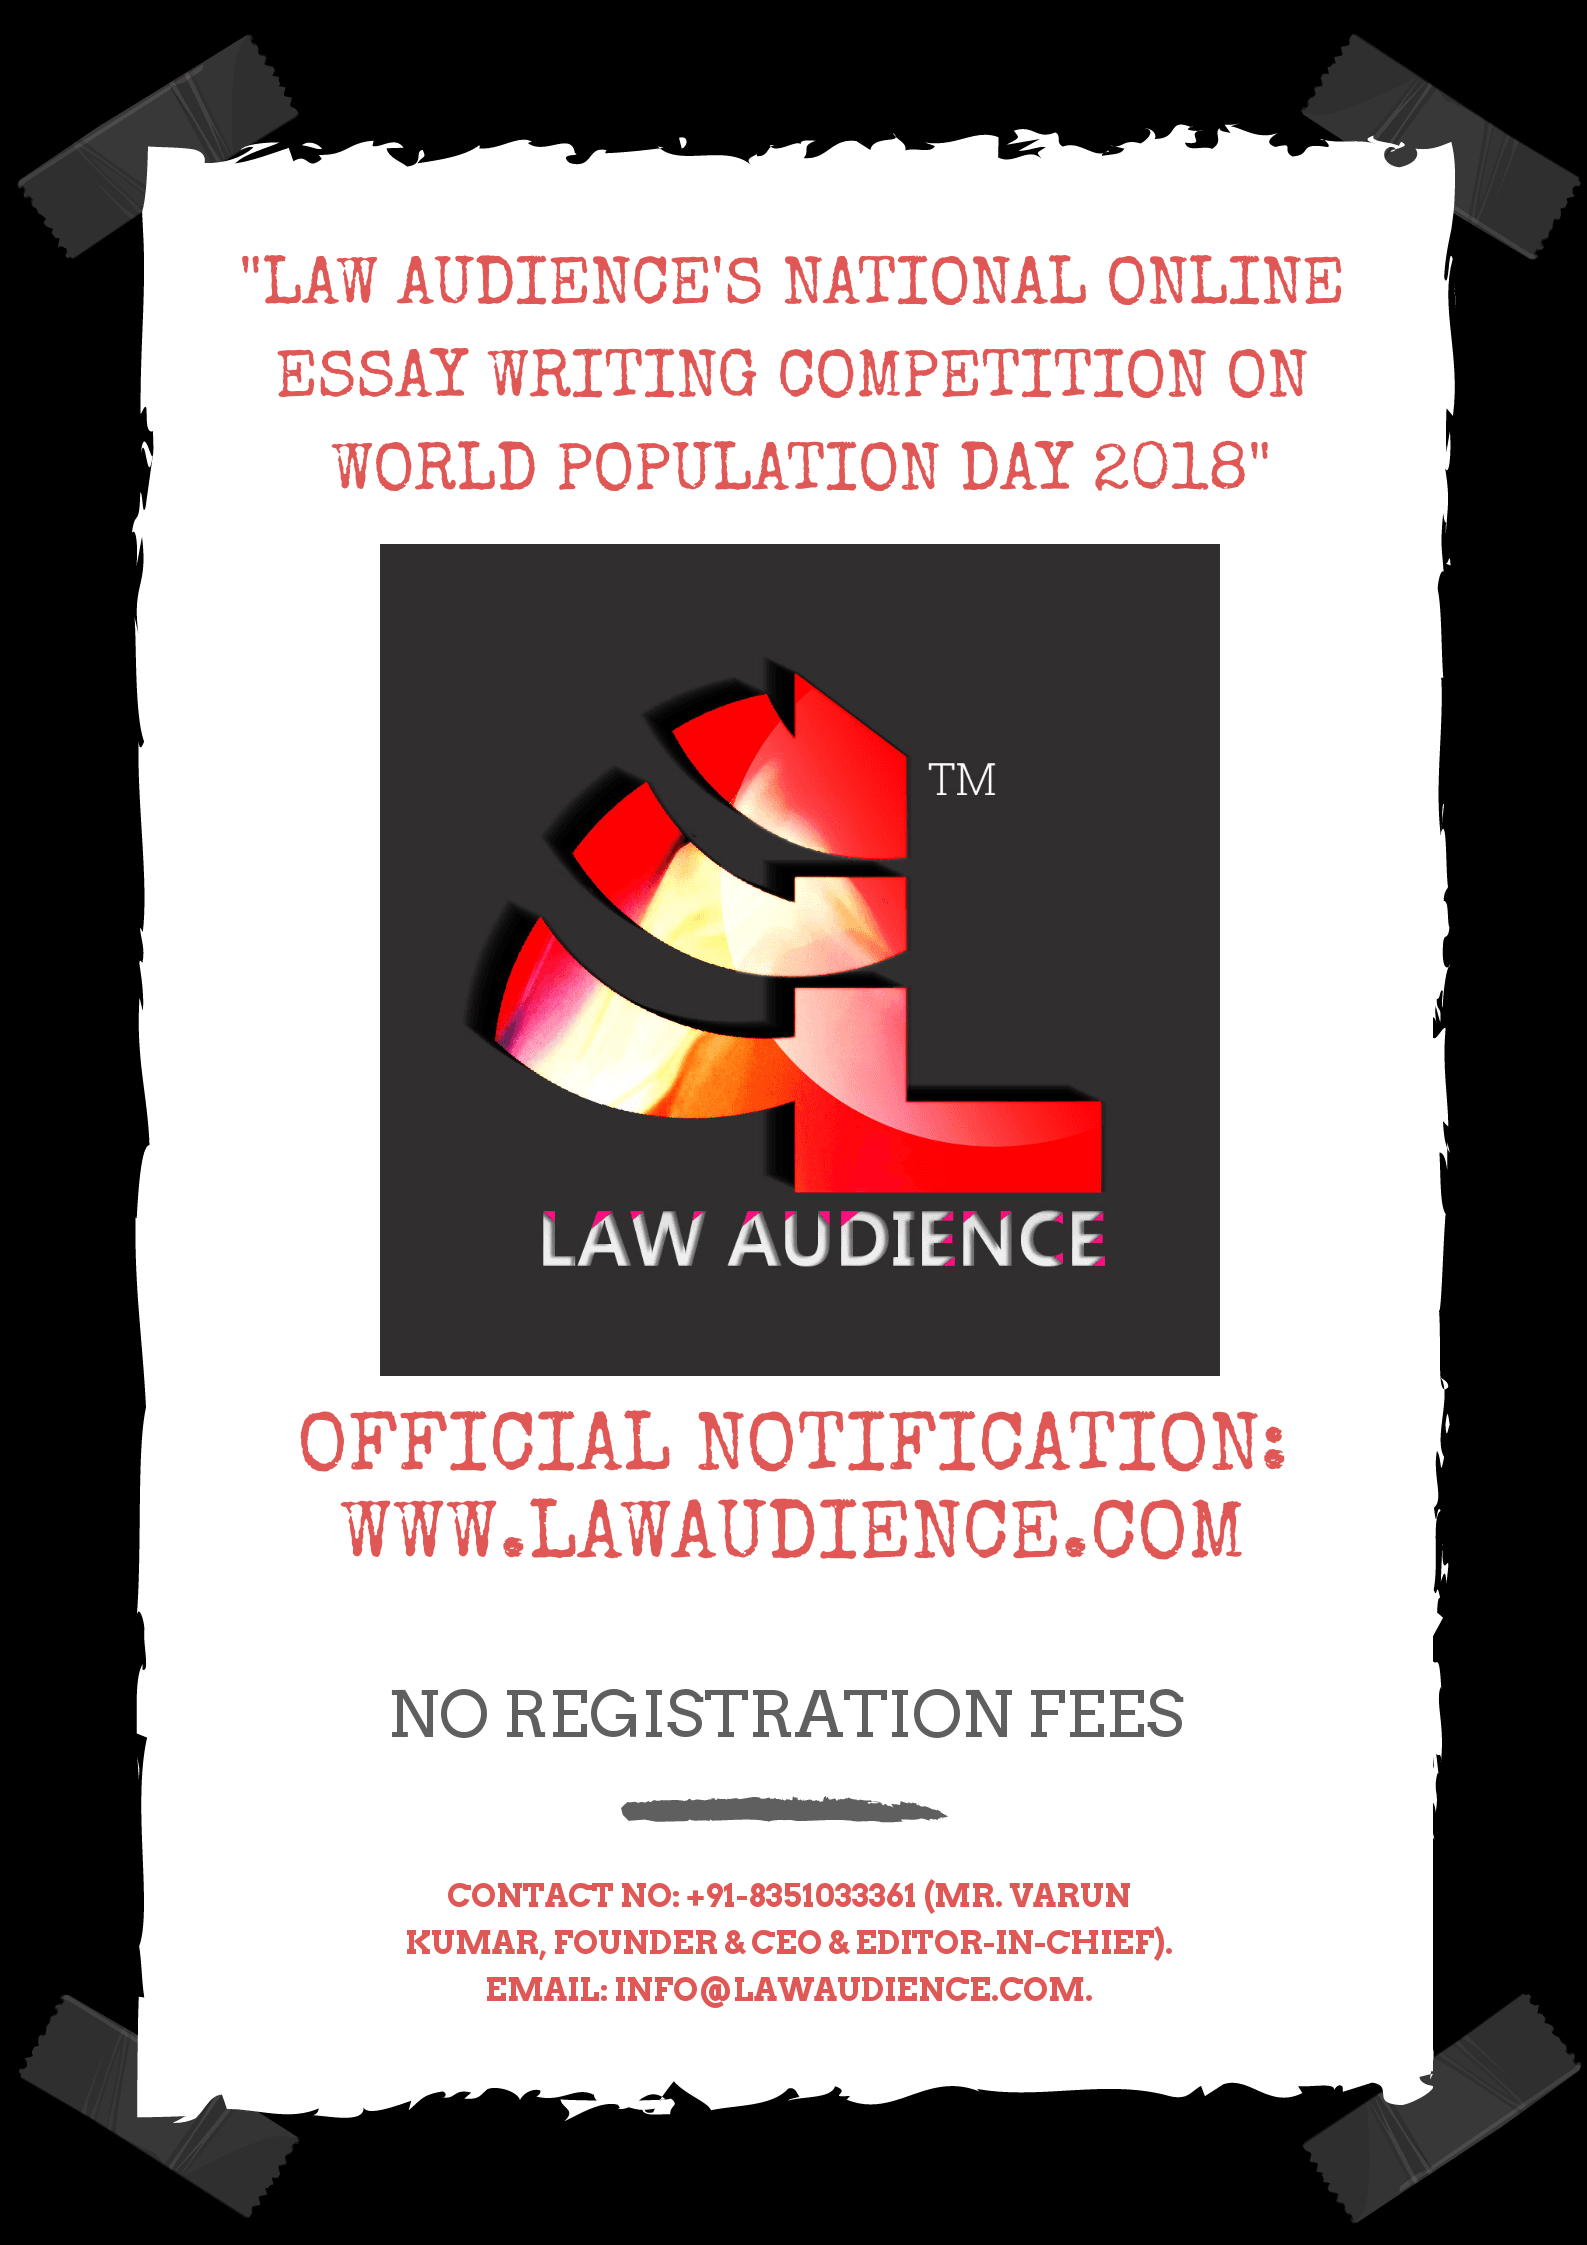 LAW AUDIENCE'S NATIONAL ONLINE ESSAY WRITING COMPETITION